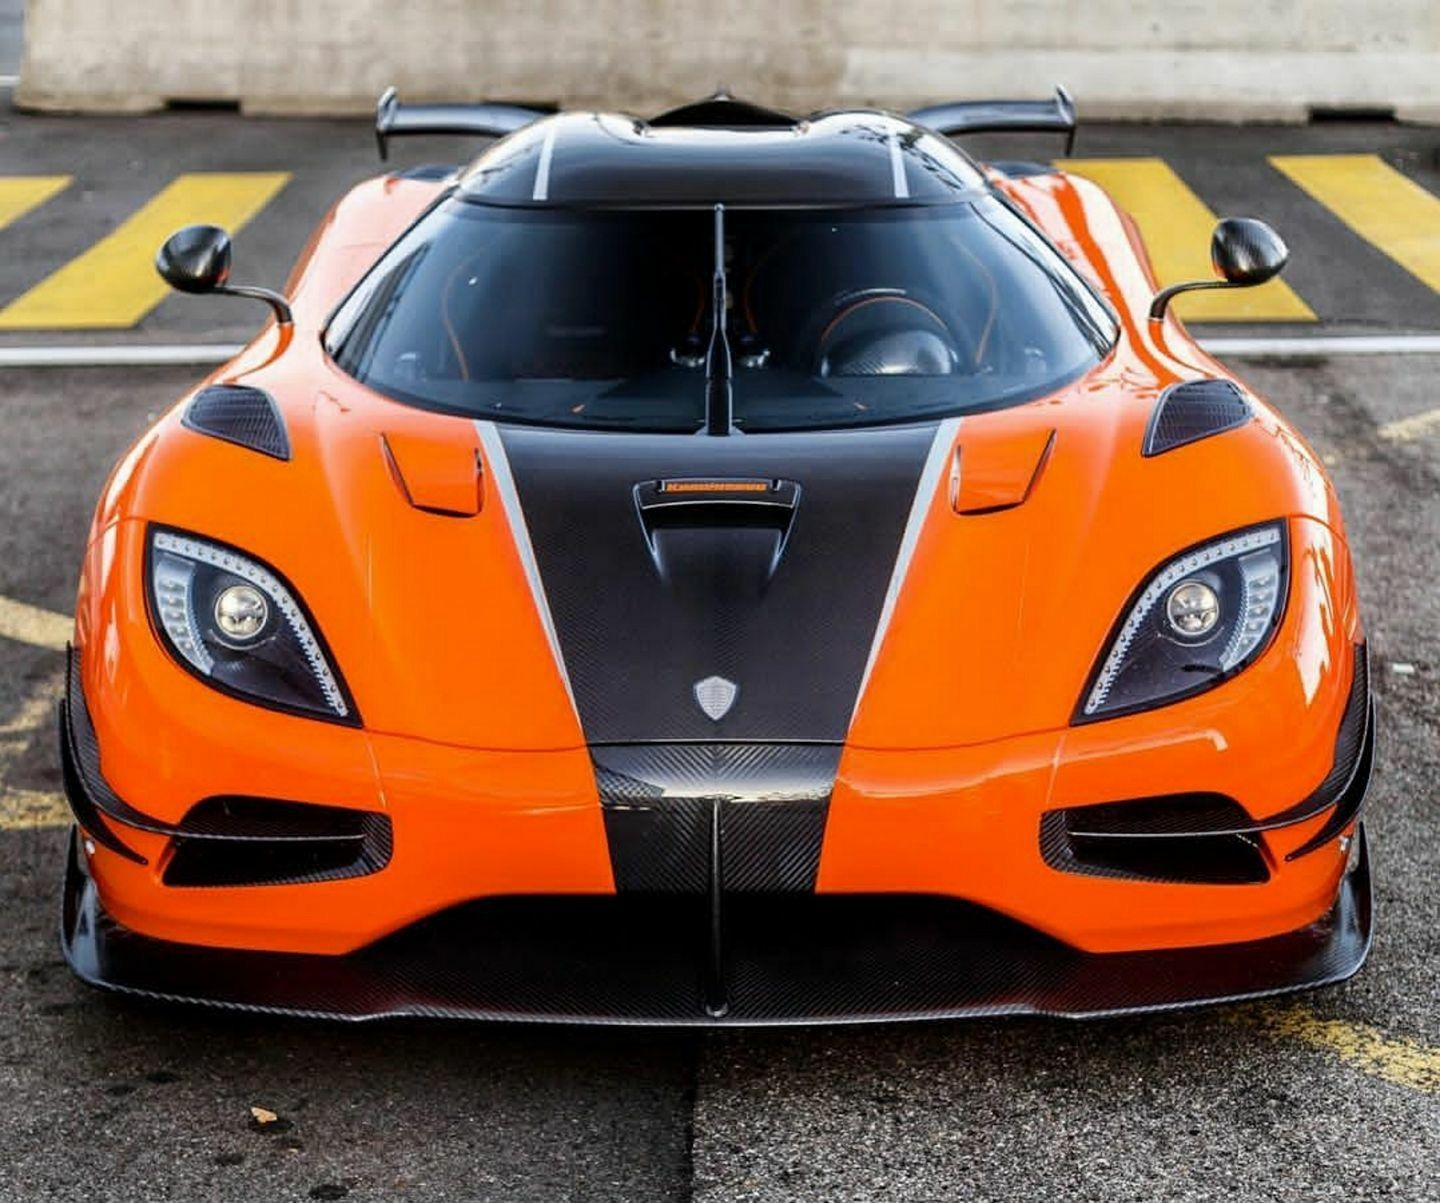 Koenigsegg Race Car: Koenigsegg, Expensive Sports Cars